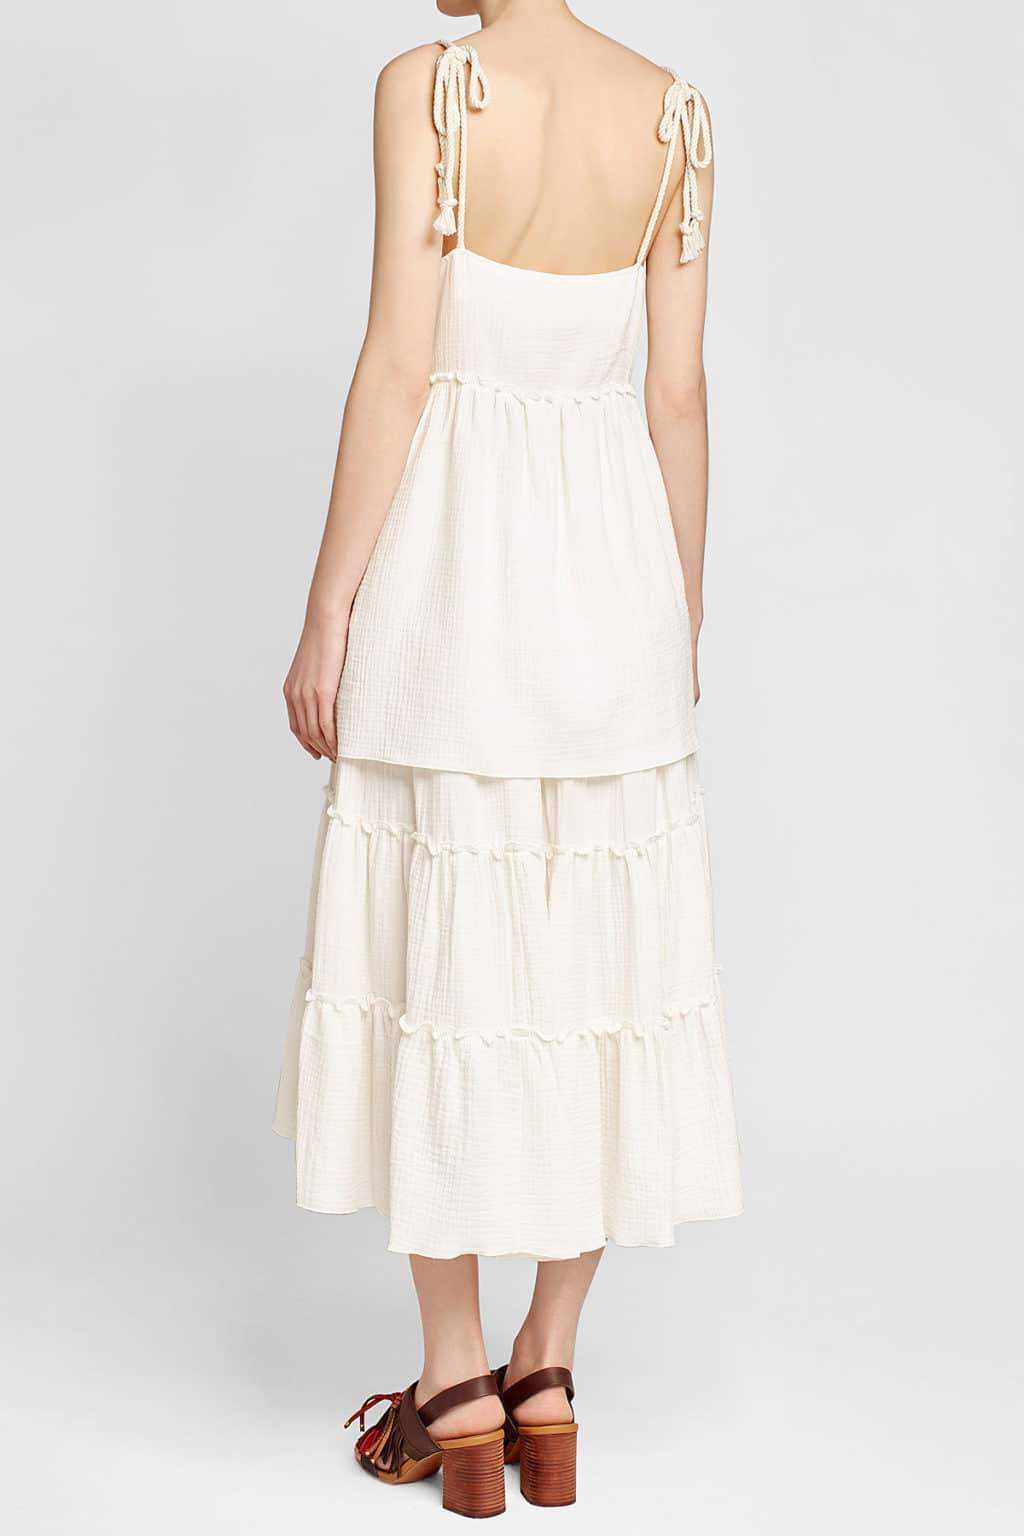 See By Chlo 201 Cotton Mini Rope Straps White Dress We